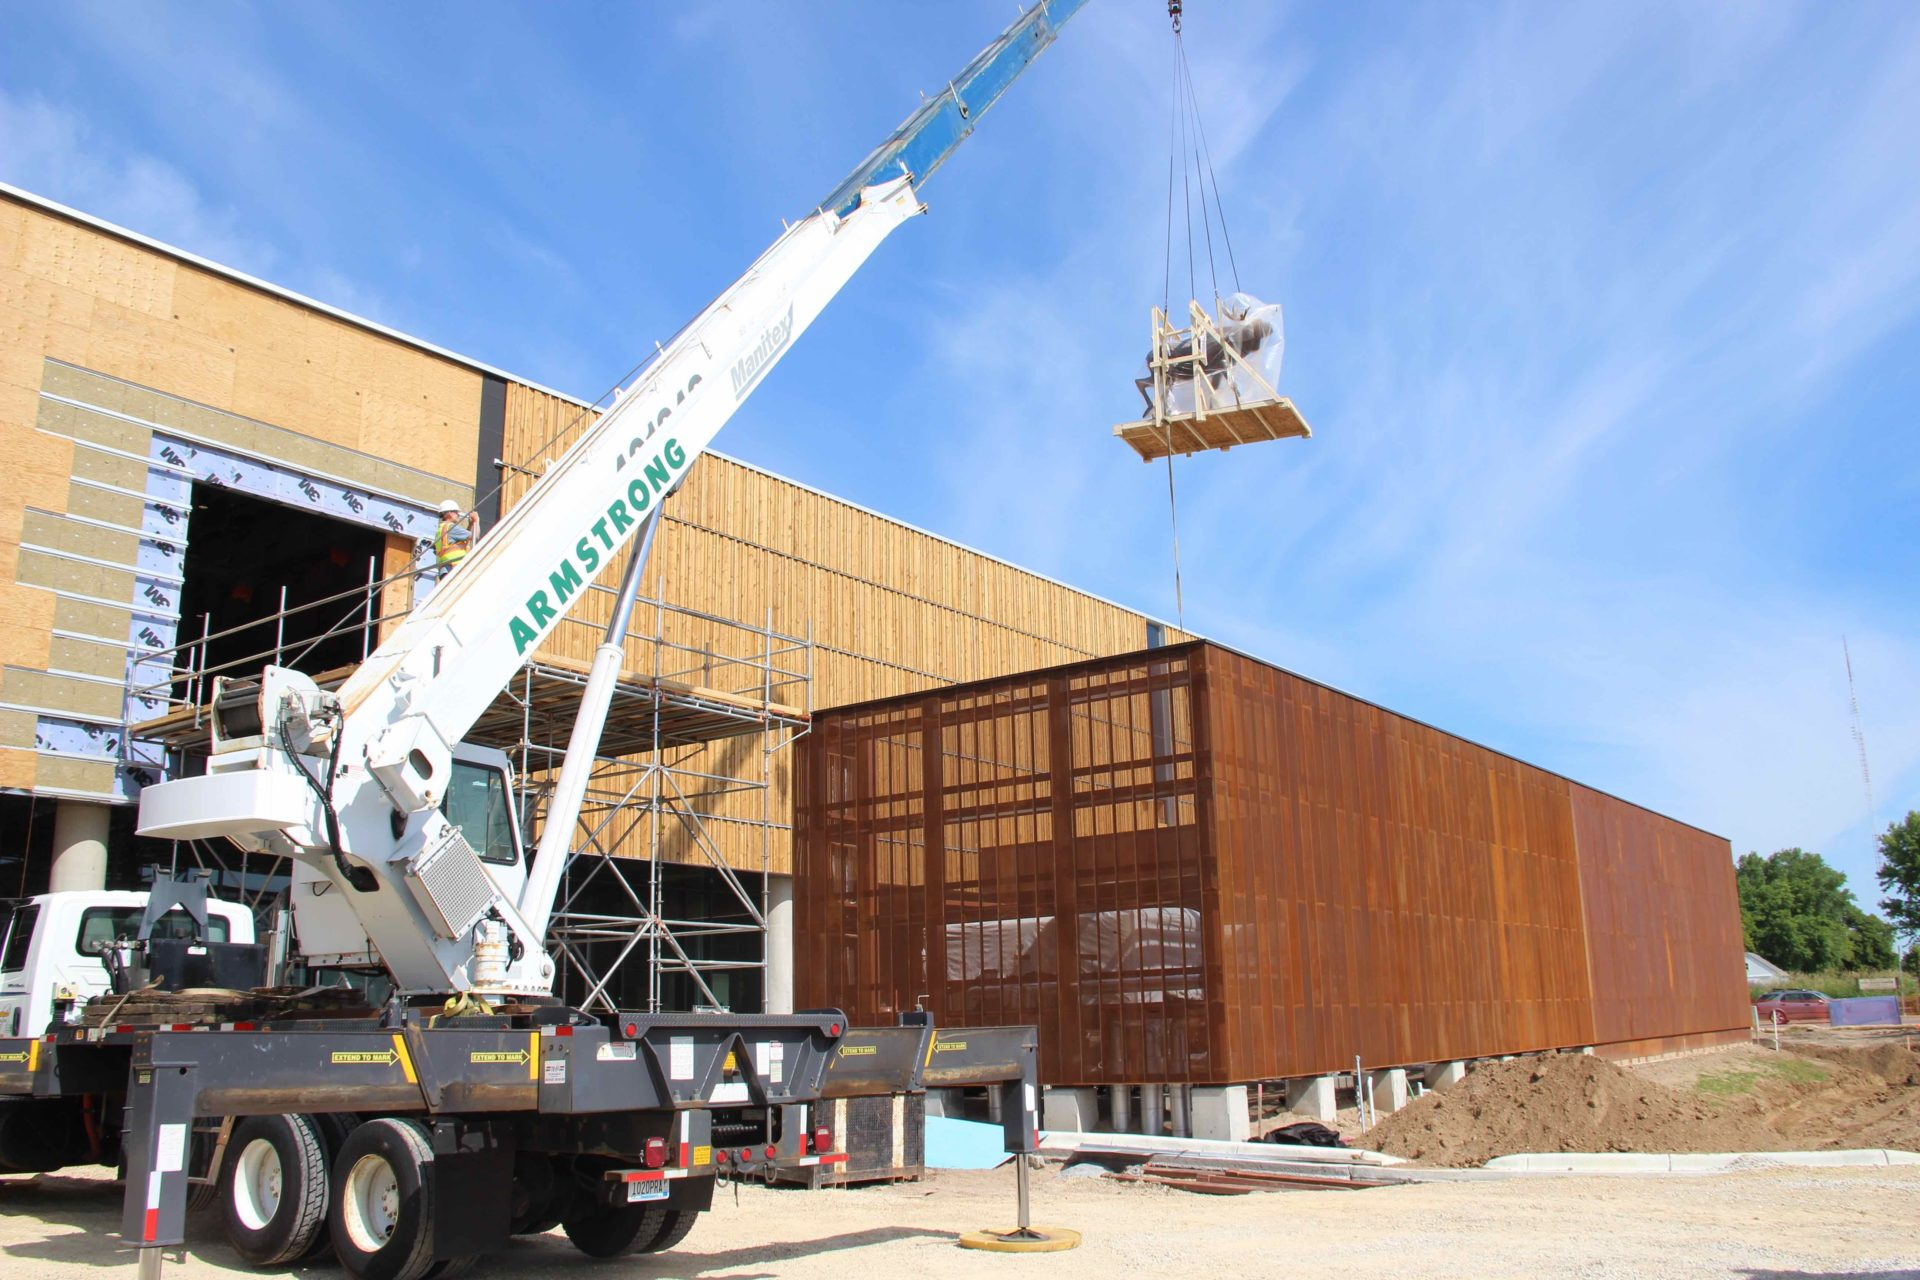 moose, wrapped in plastic, being lifted by a large crane into the new Bell Museum during construction